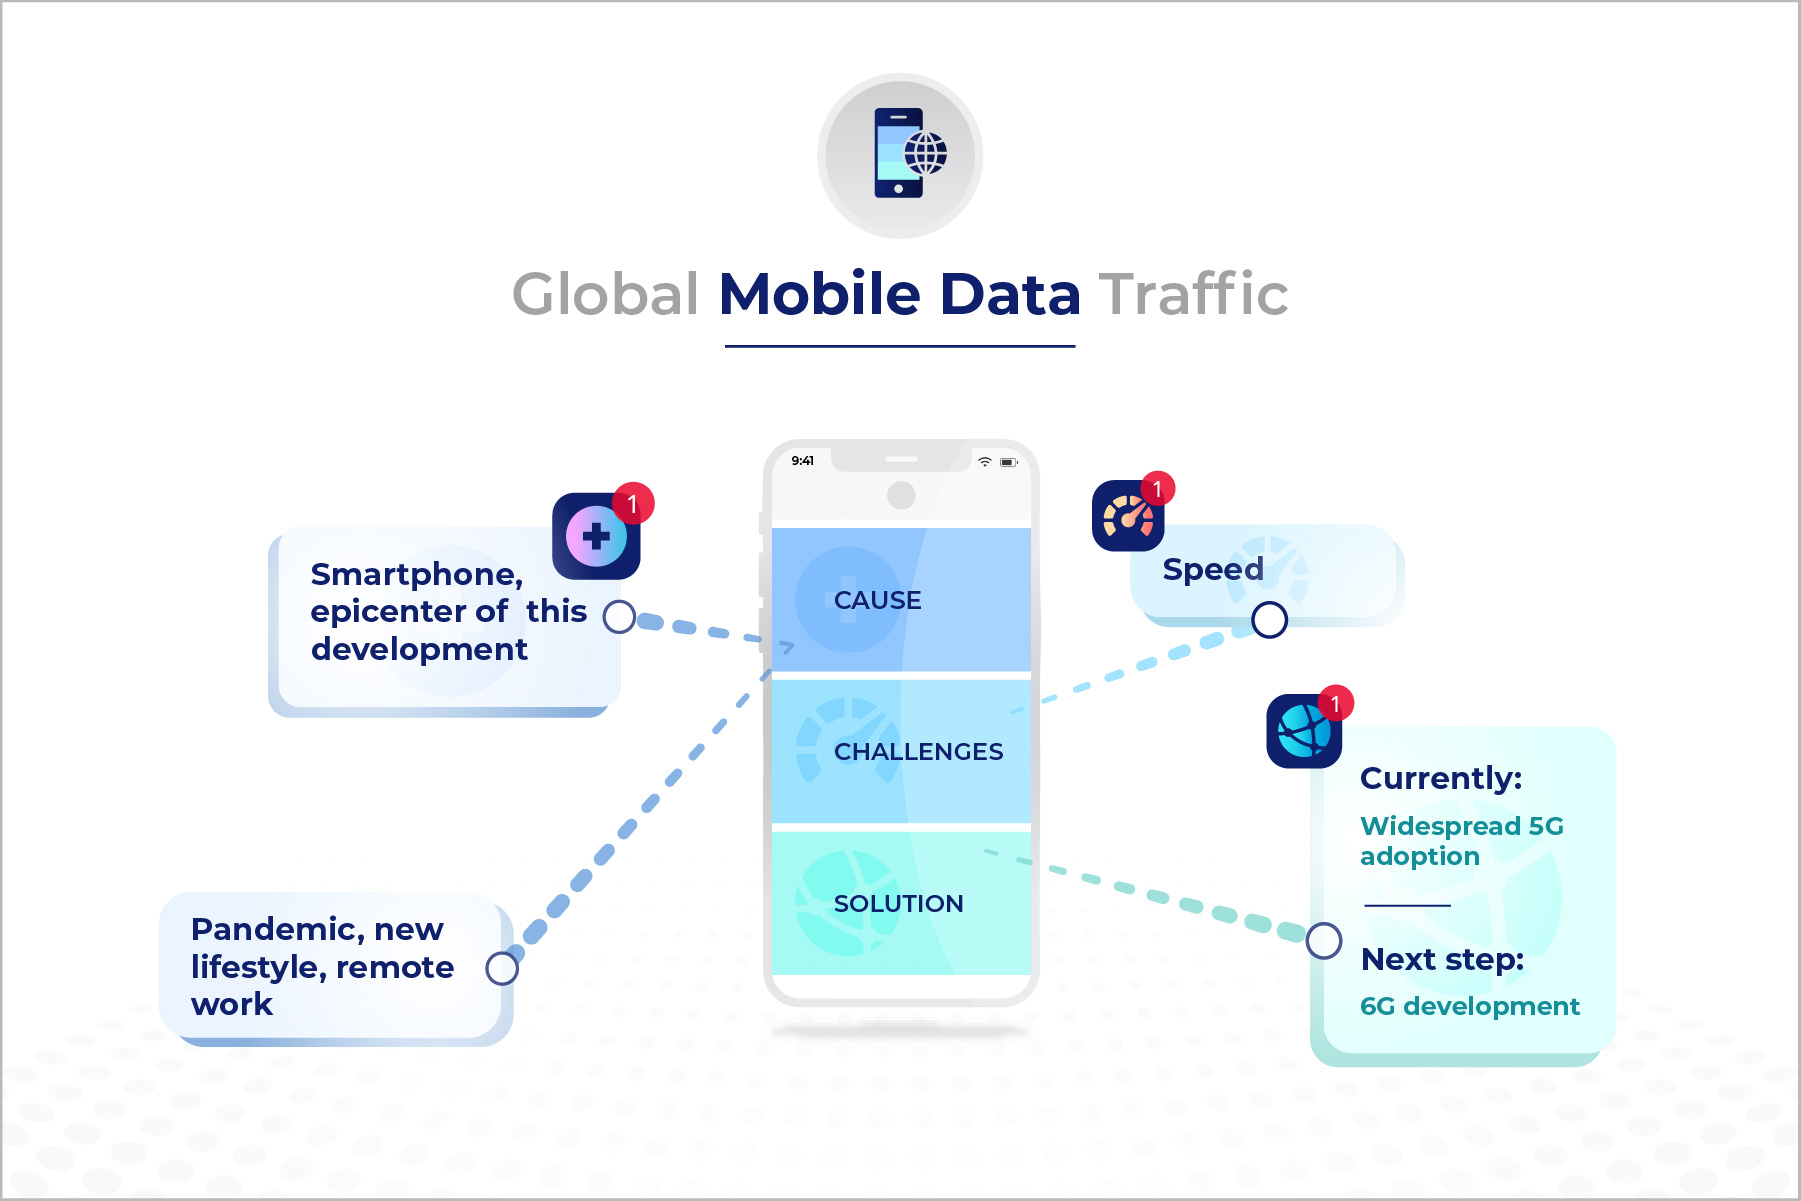 The Rise In Mobile Data Consumption: Facts & Figures